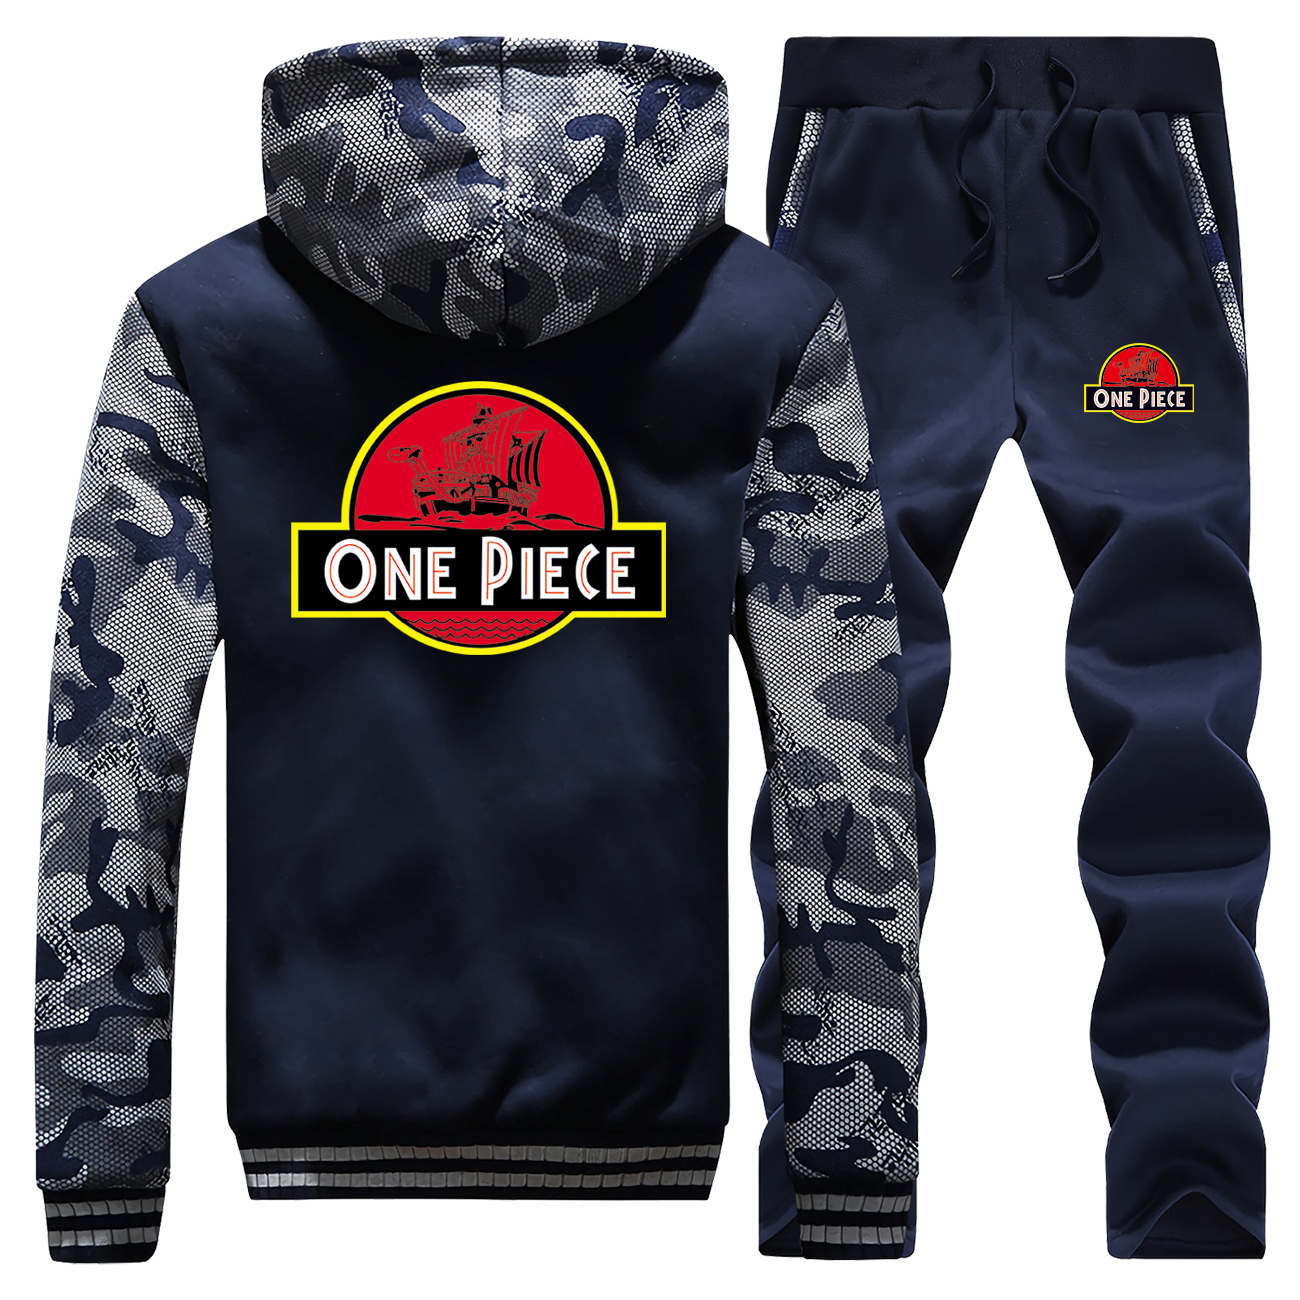 Winter 2019 New Camouflage Mens Japan Anime One Piece Cartoon Print Fashion Warm Sportswear Suit Coat Thick+Pants 2 Piece Set